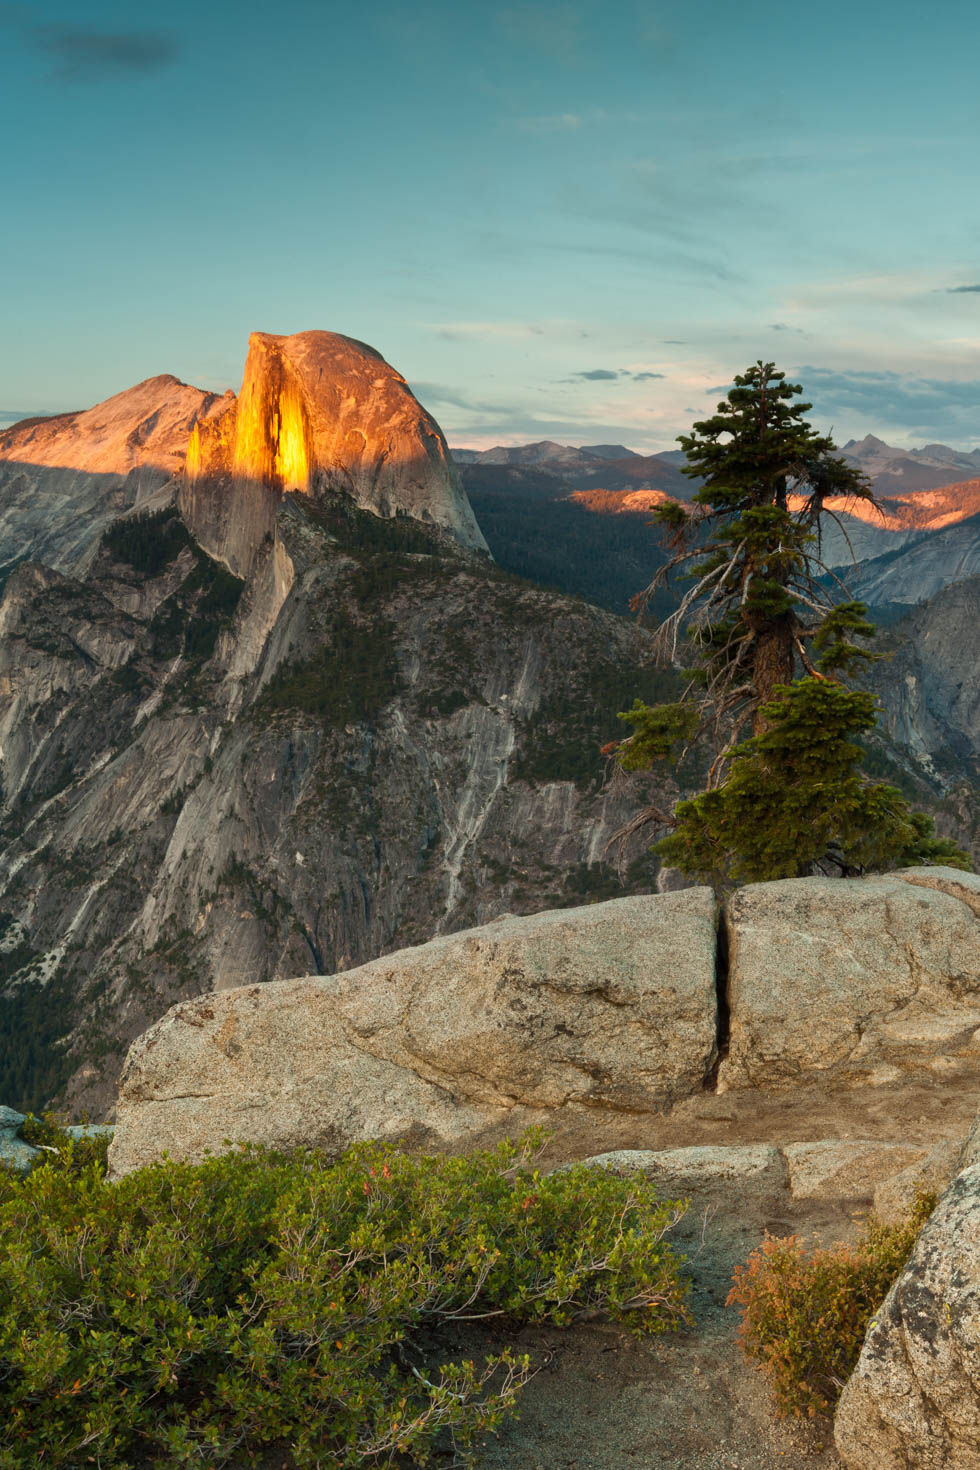 Sunset over Half Dome, Glacier Point, Yosemite National Park, California